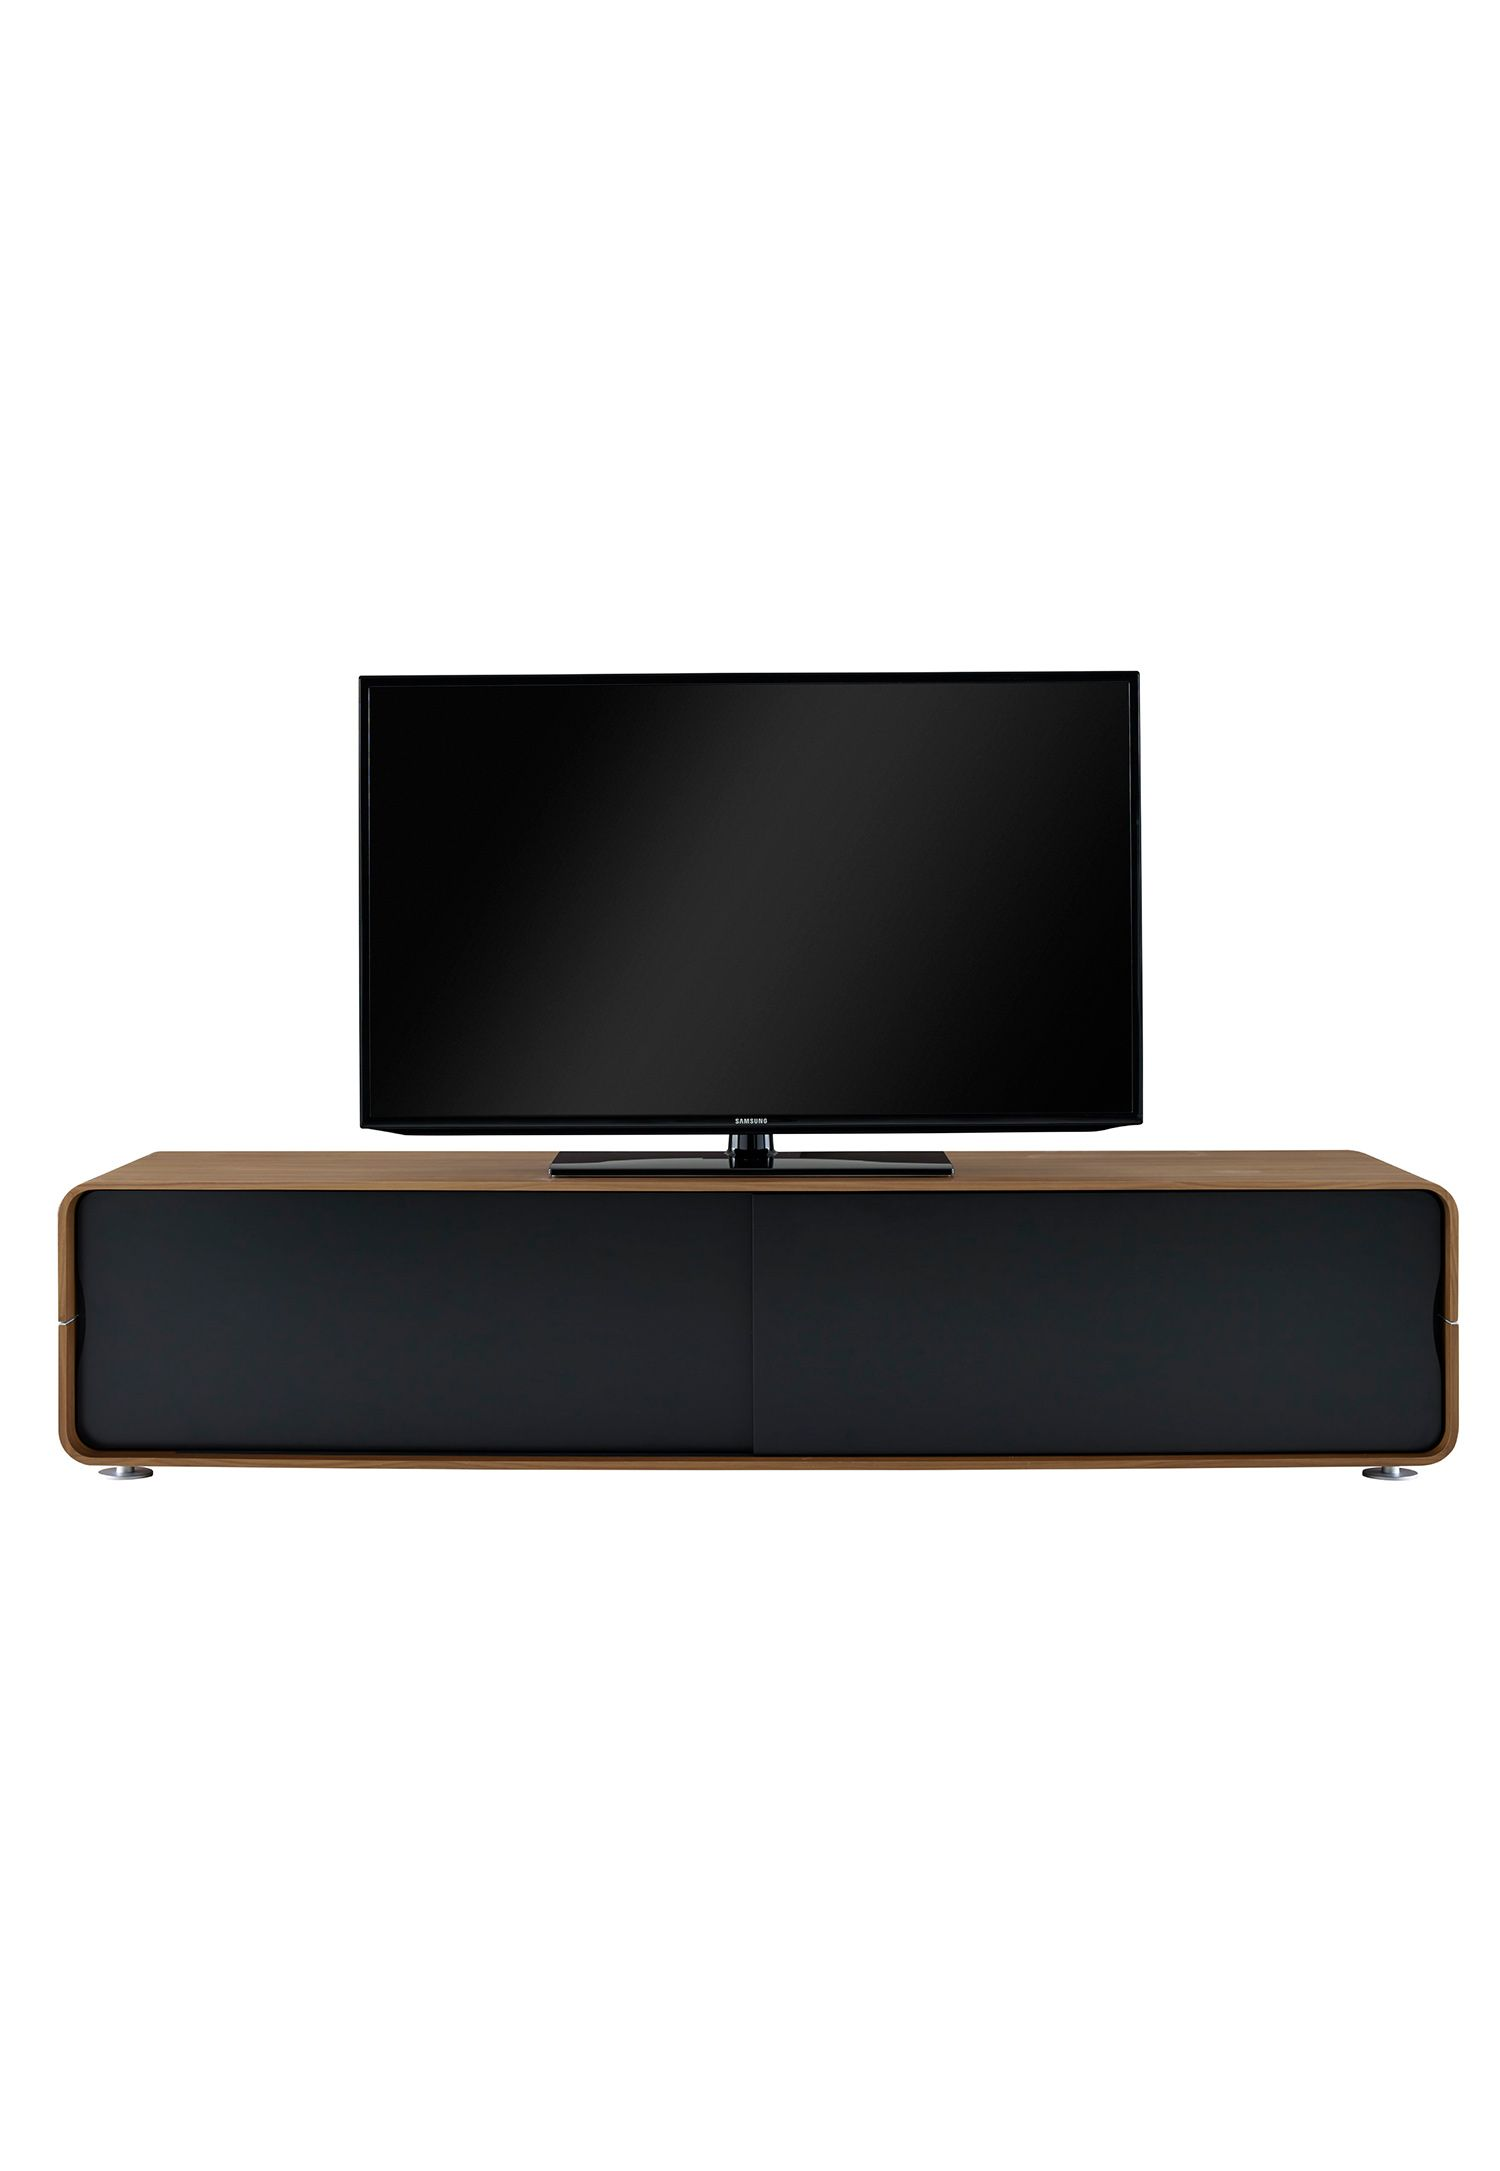 Ligne Roset Tv Meubel.Cemia Tv Unit Designed By Peter Maly For Ligne Roset Available